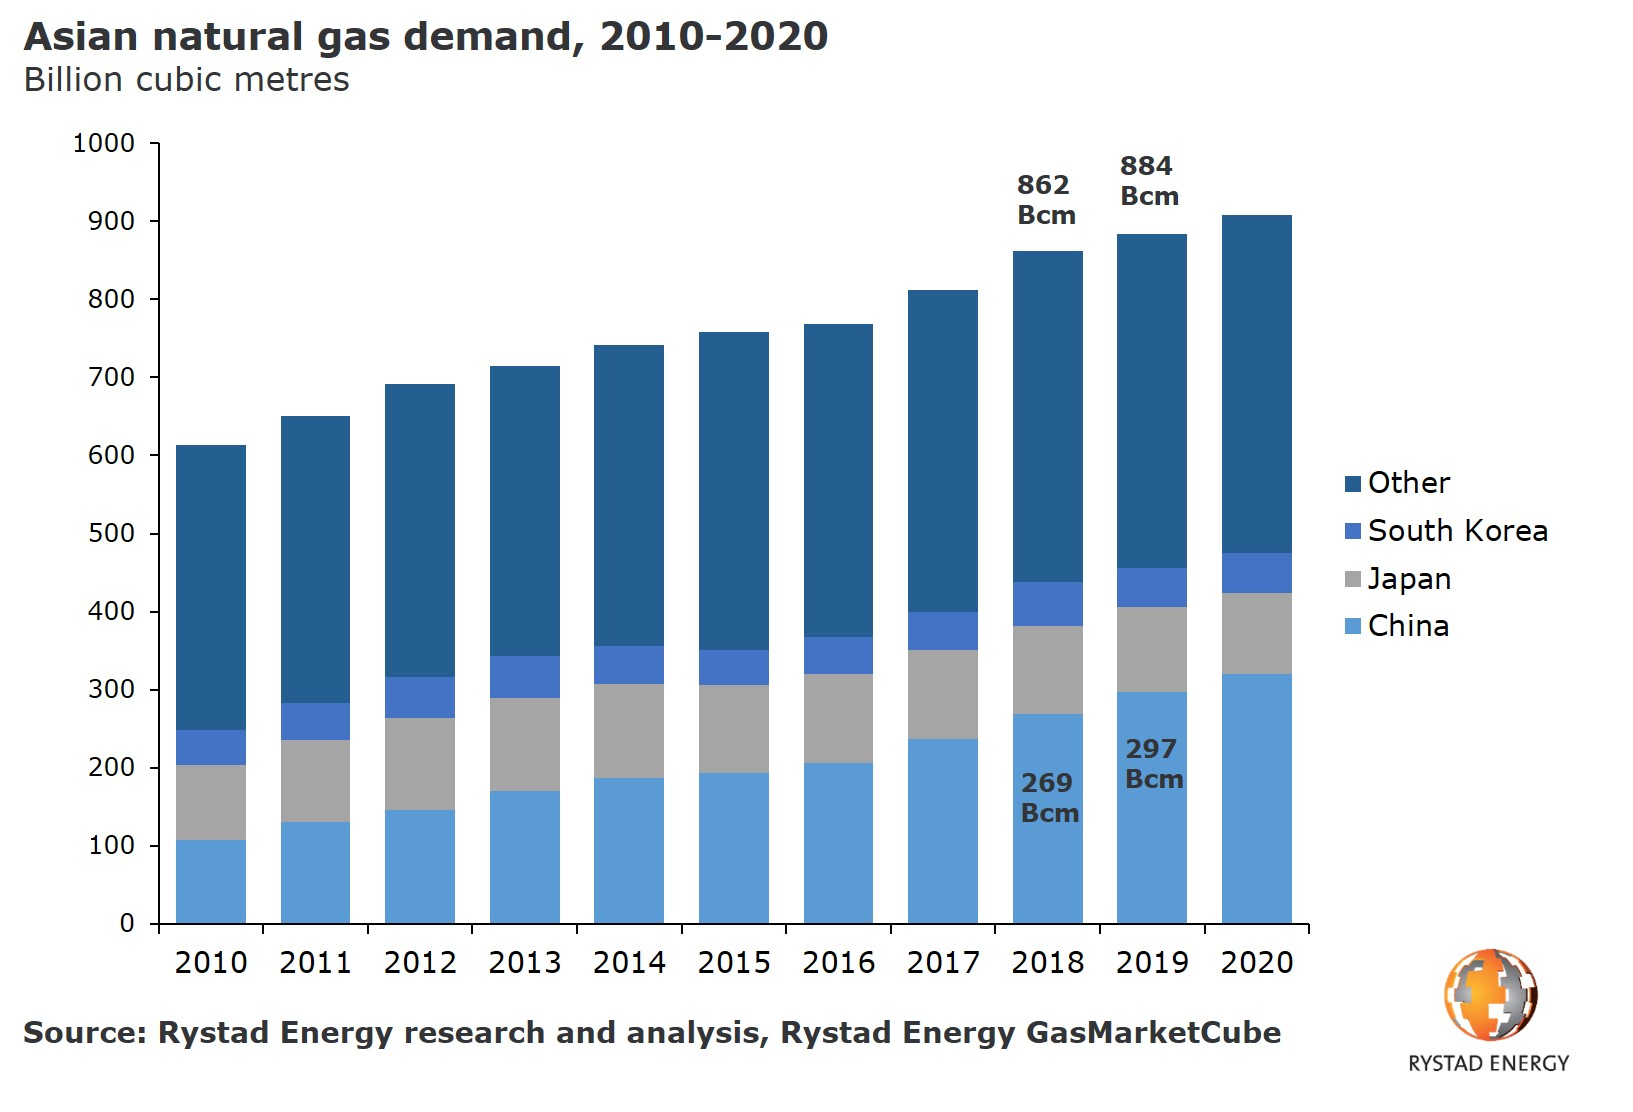 A bar chart showing the Asian natural gas demand, 2010-2020 in Billion cubic metres from 2010 to 2020. Source: Rystad Energy research and analysis